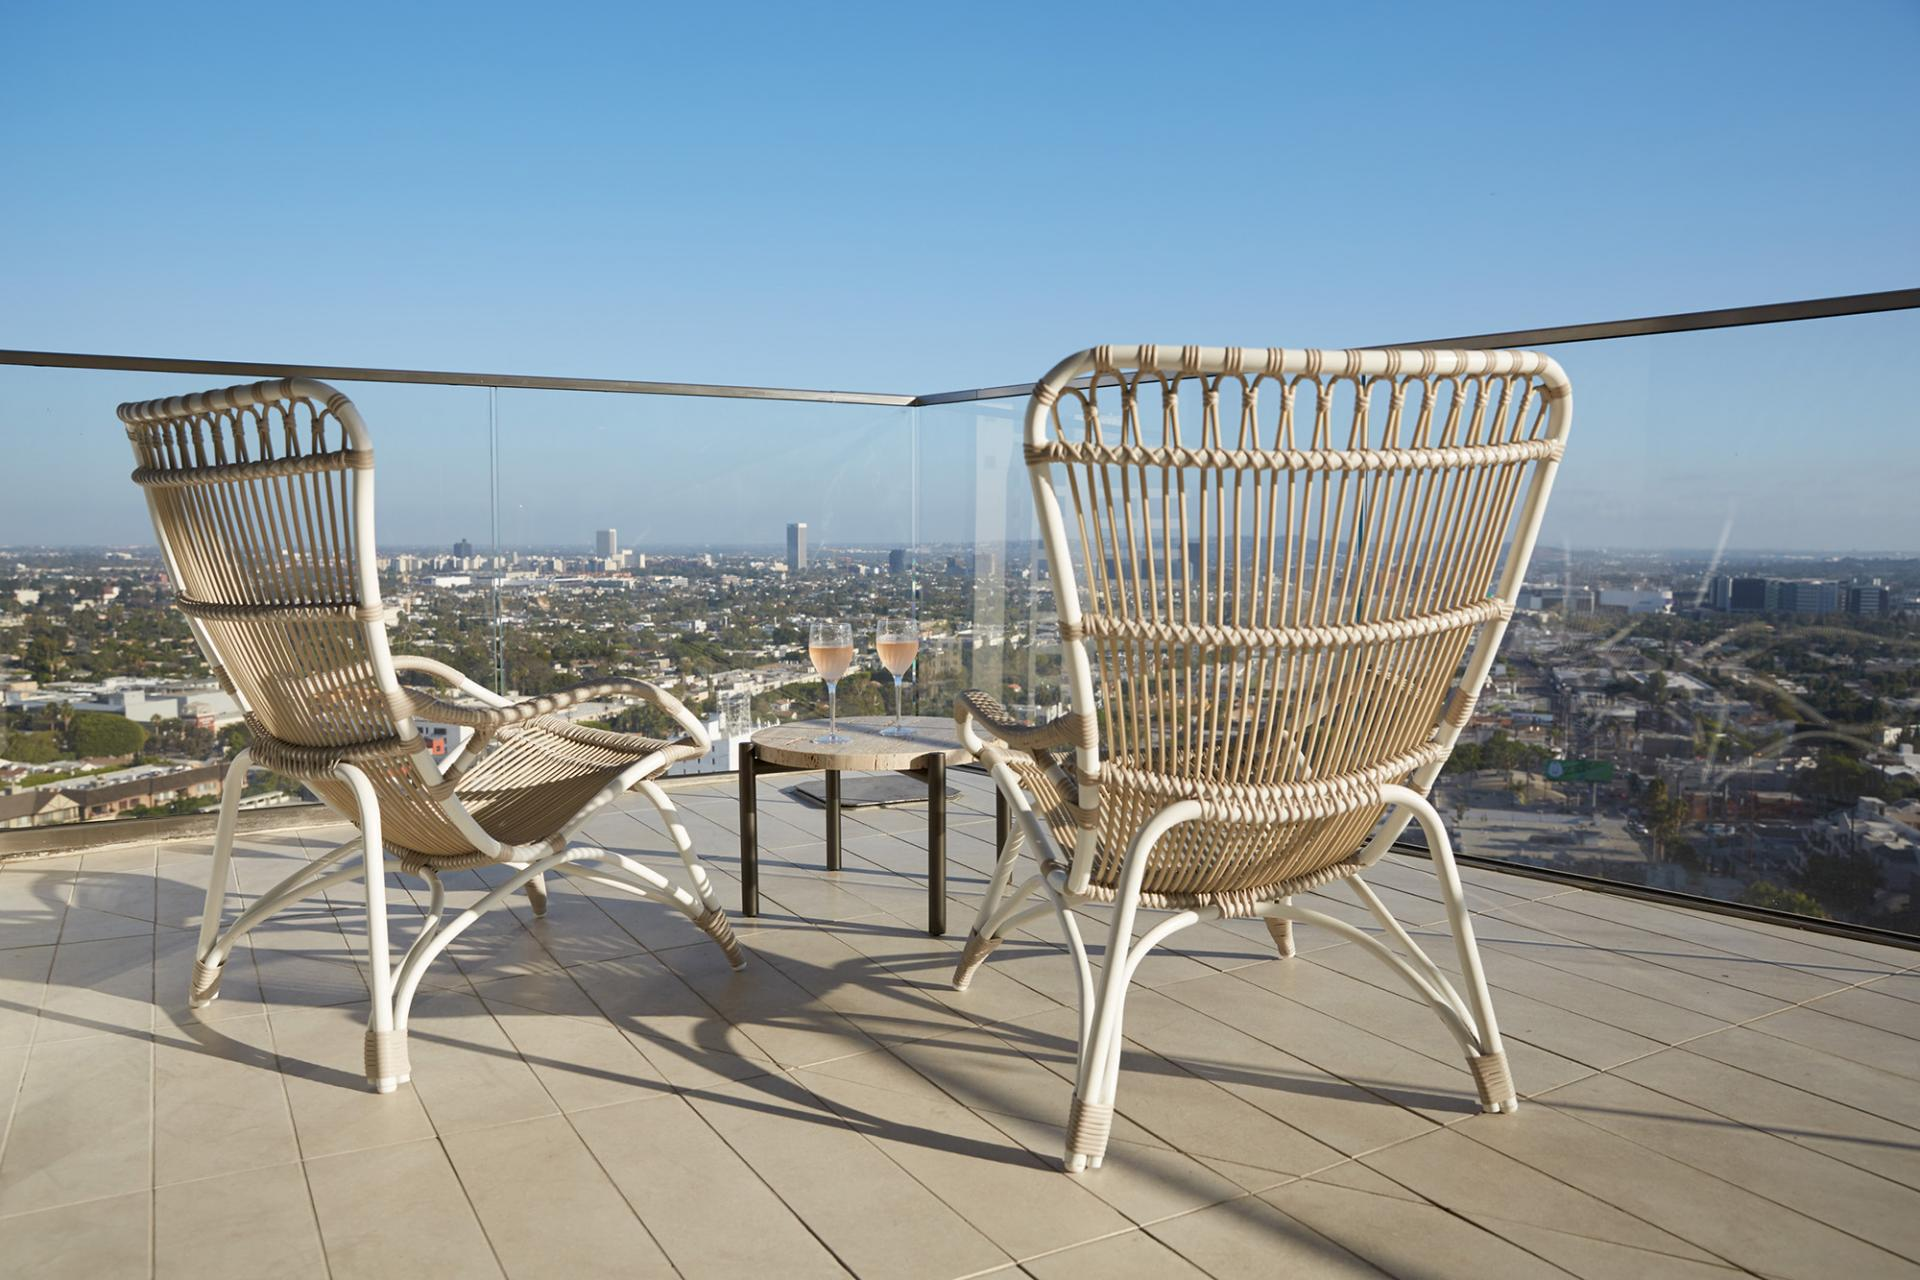 Two wicker chairs on a rooftop patio overlooking West Hollywood